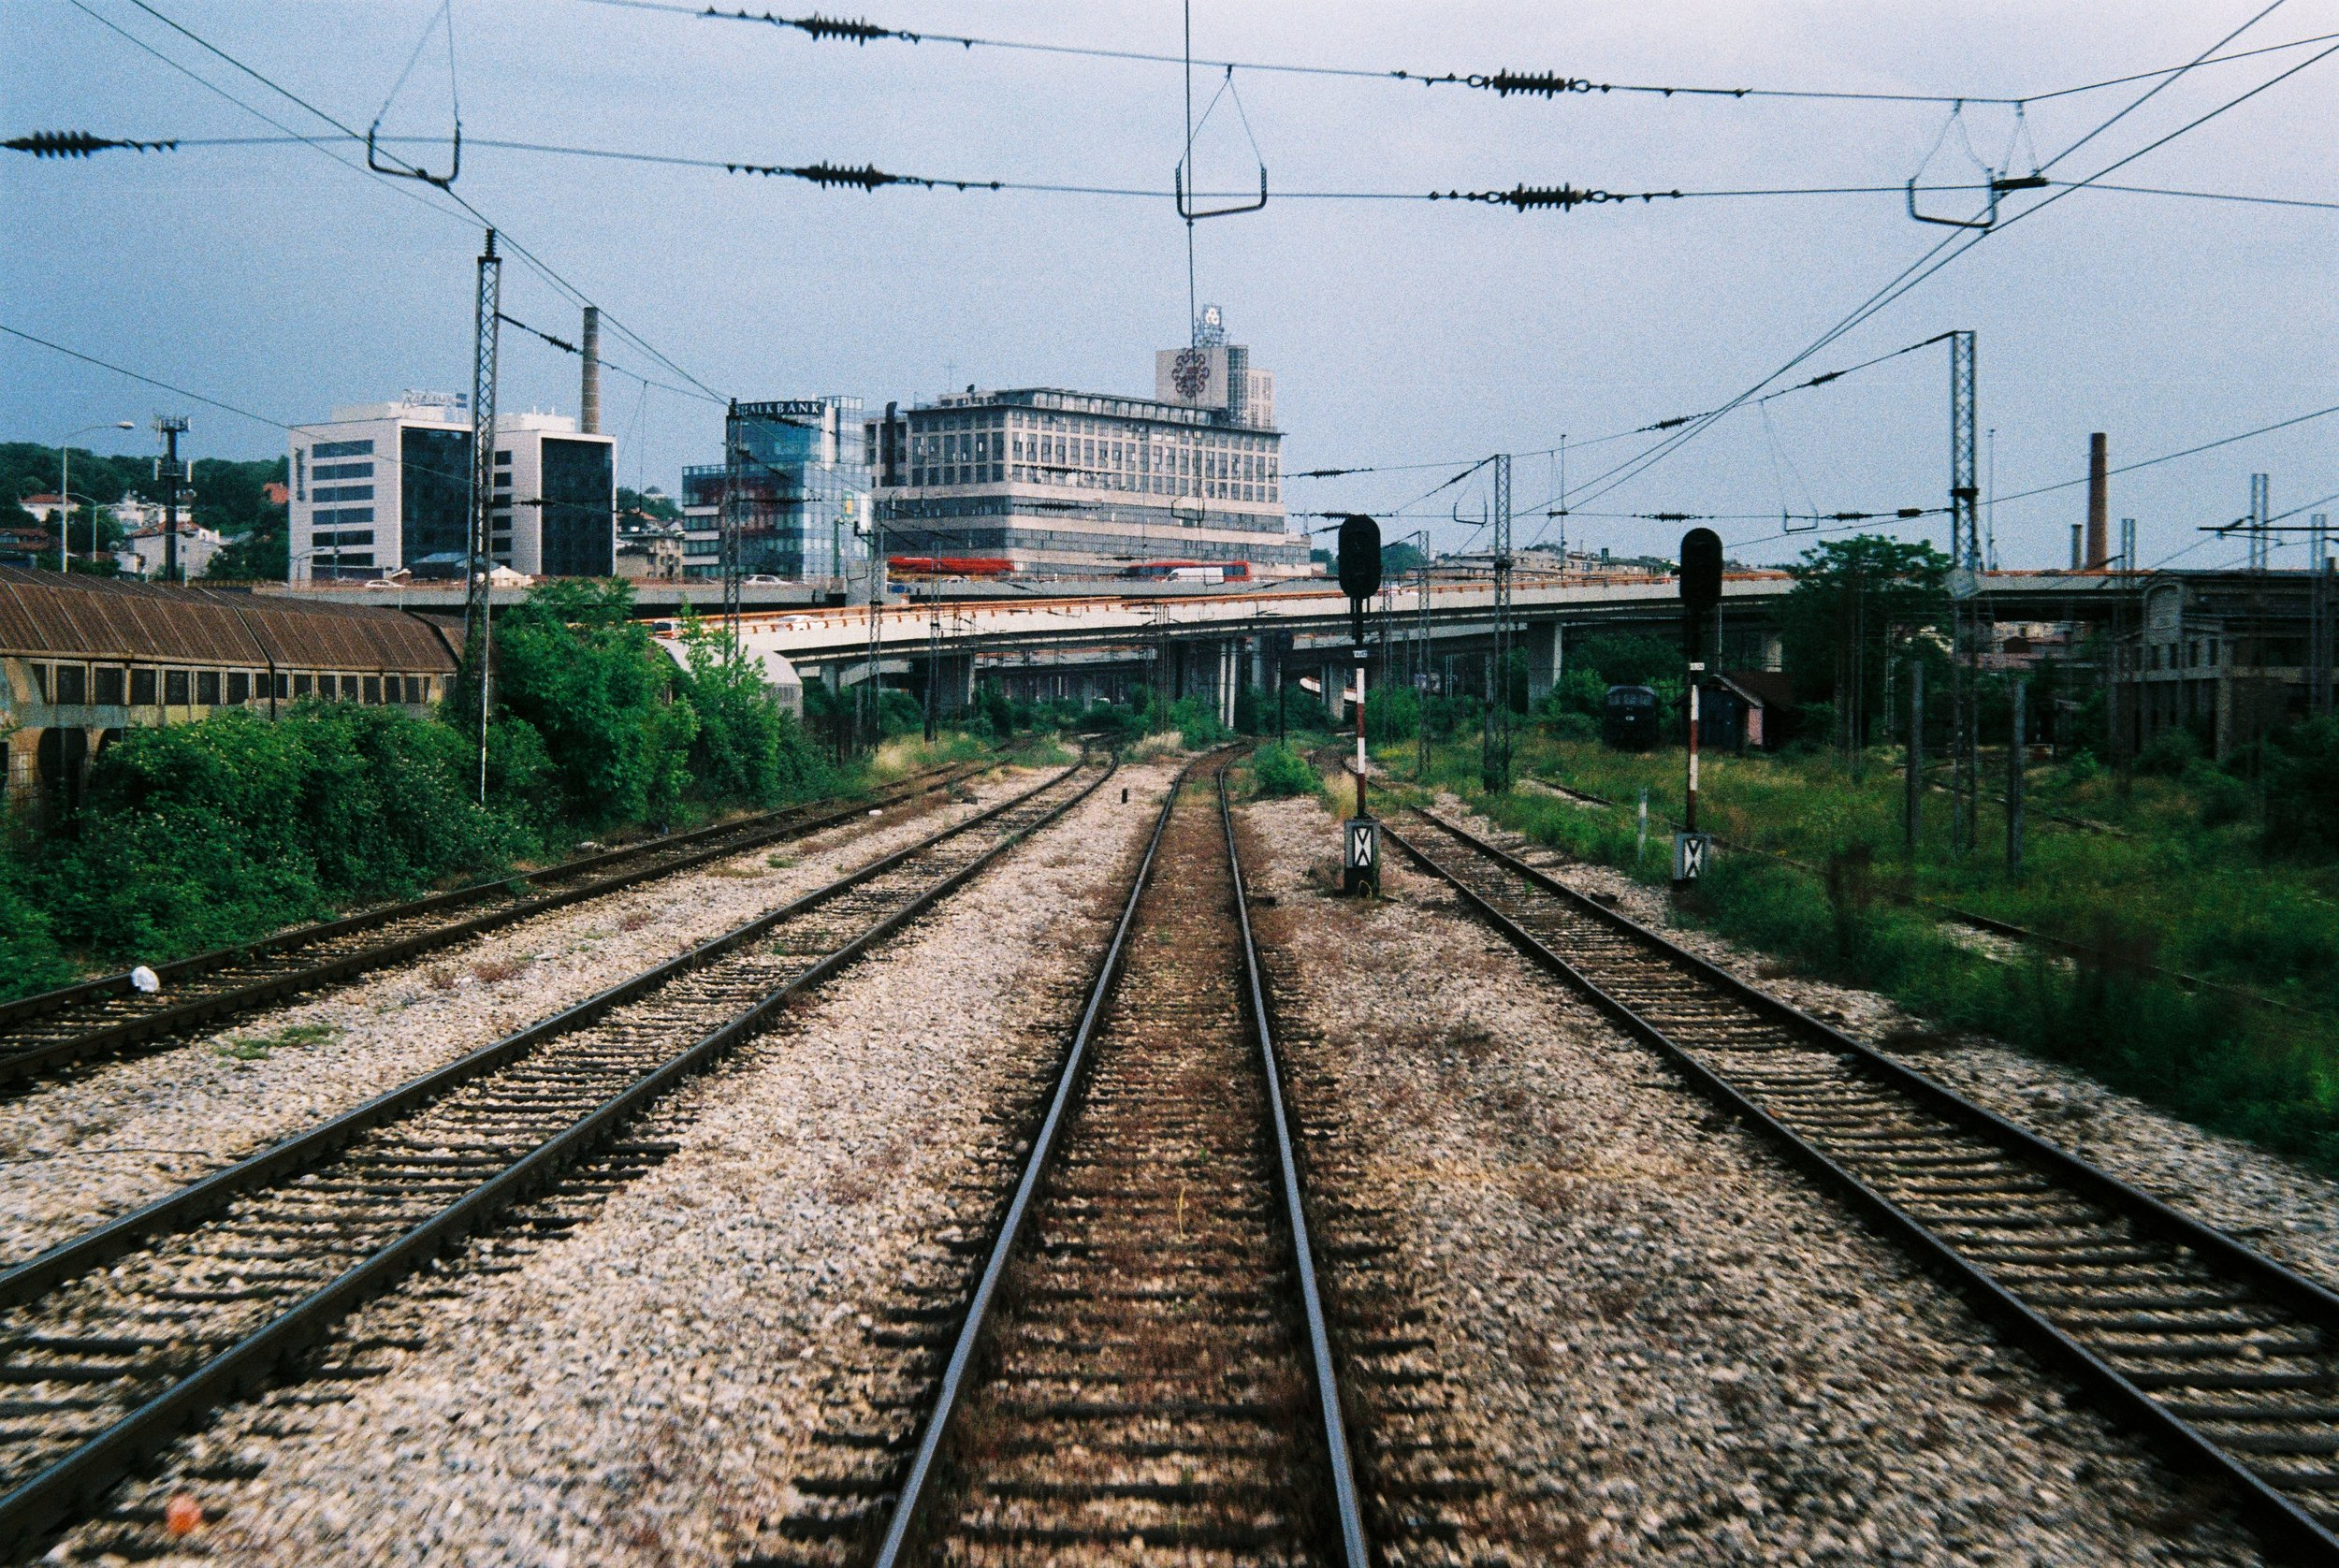 View from the Train Arriving at the [Old] Belgrade Train Station One Month Before Closure - May, 2018